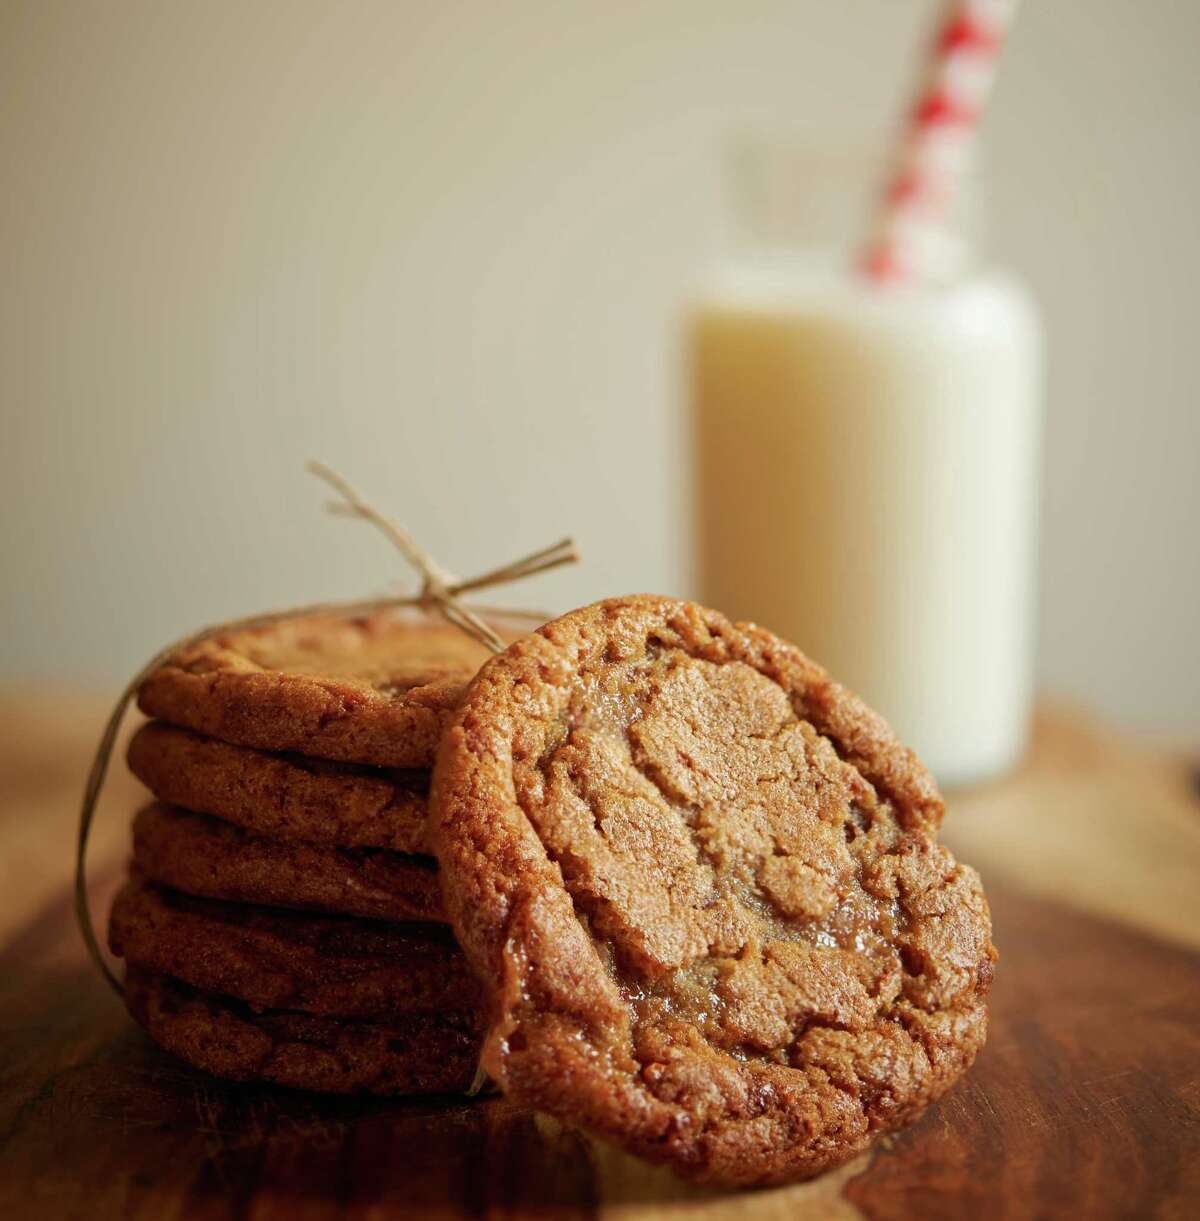 Anthony's Cookies' Toffee Chip cookies